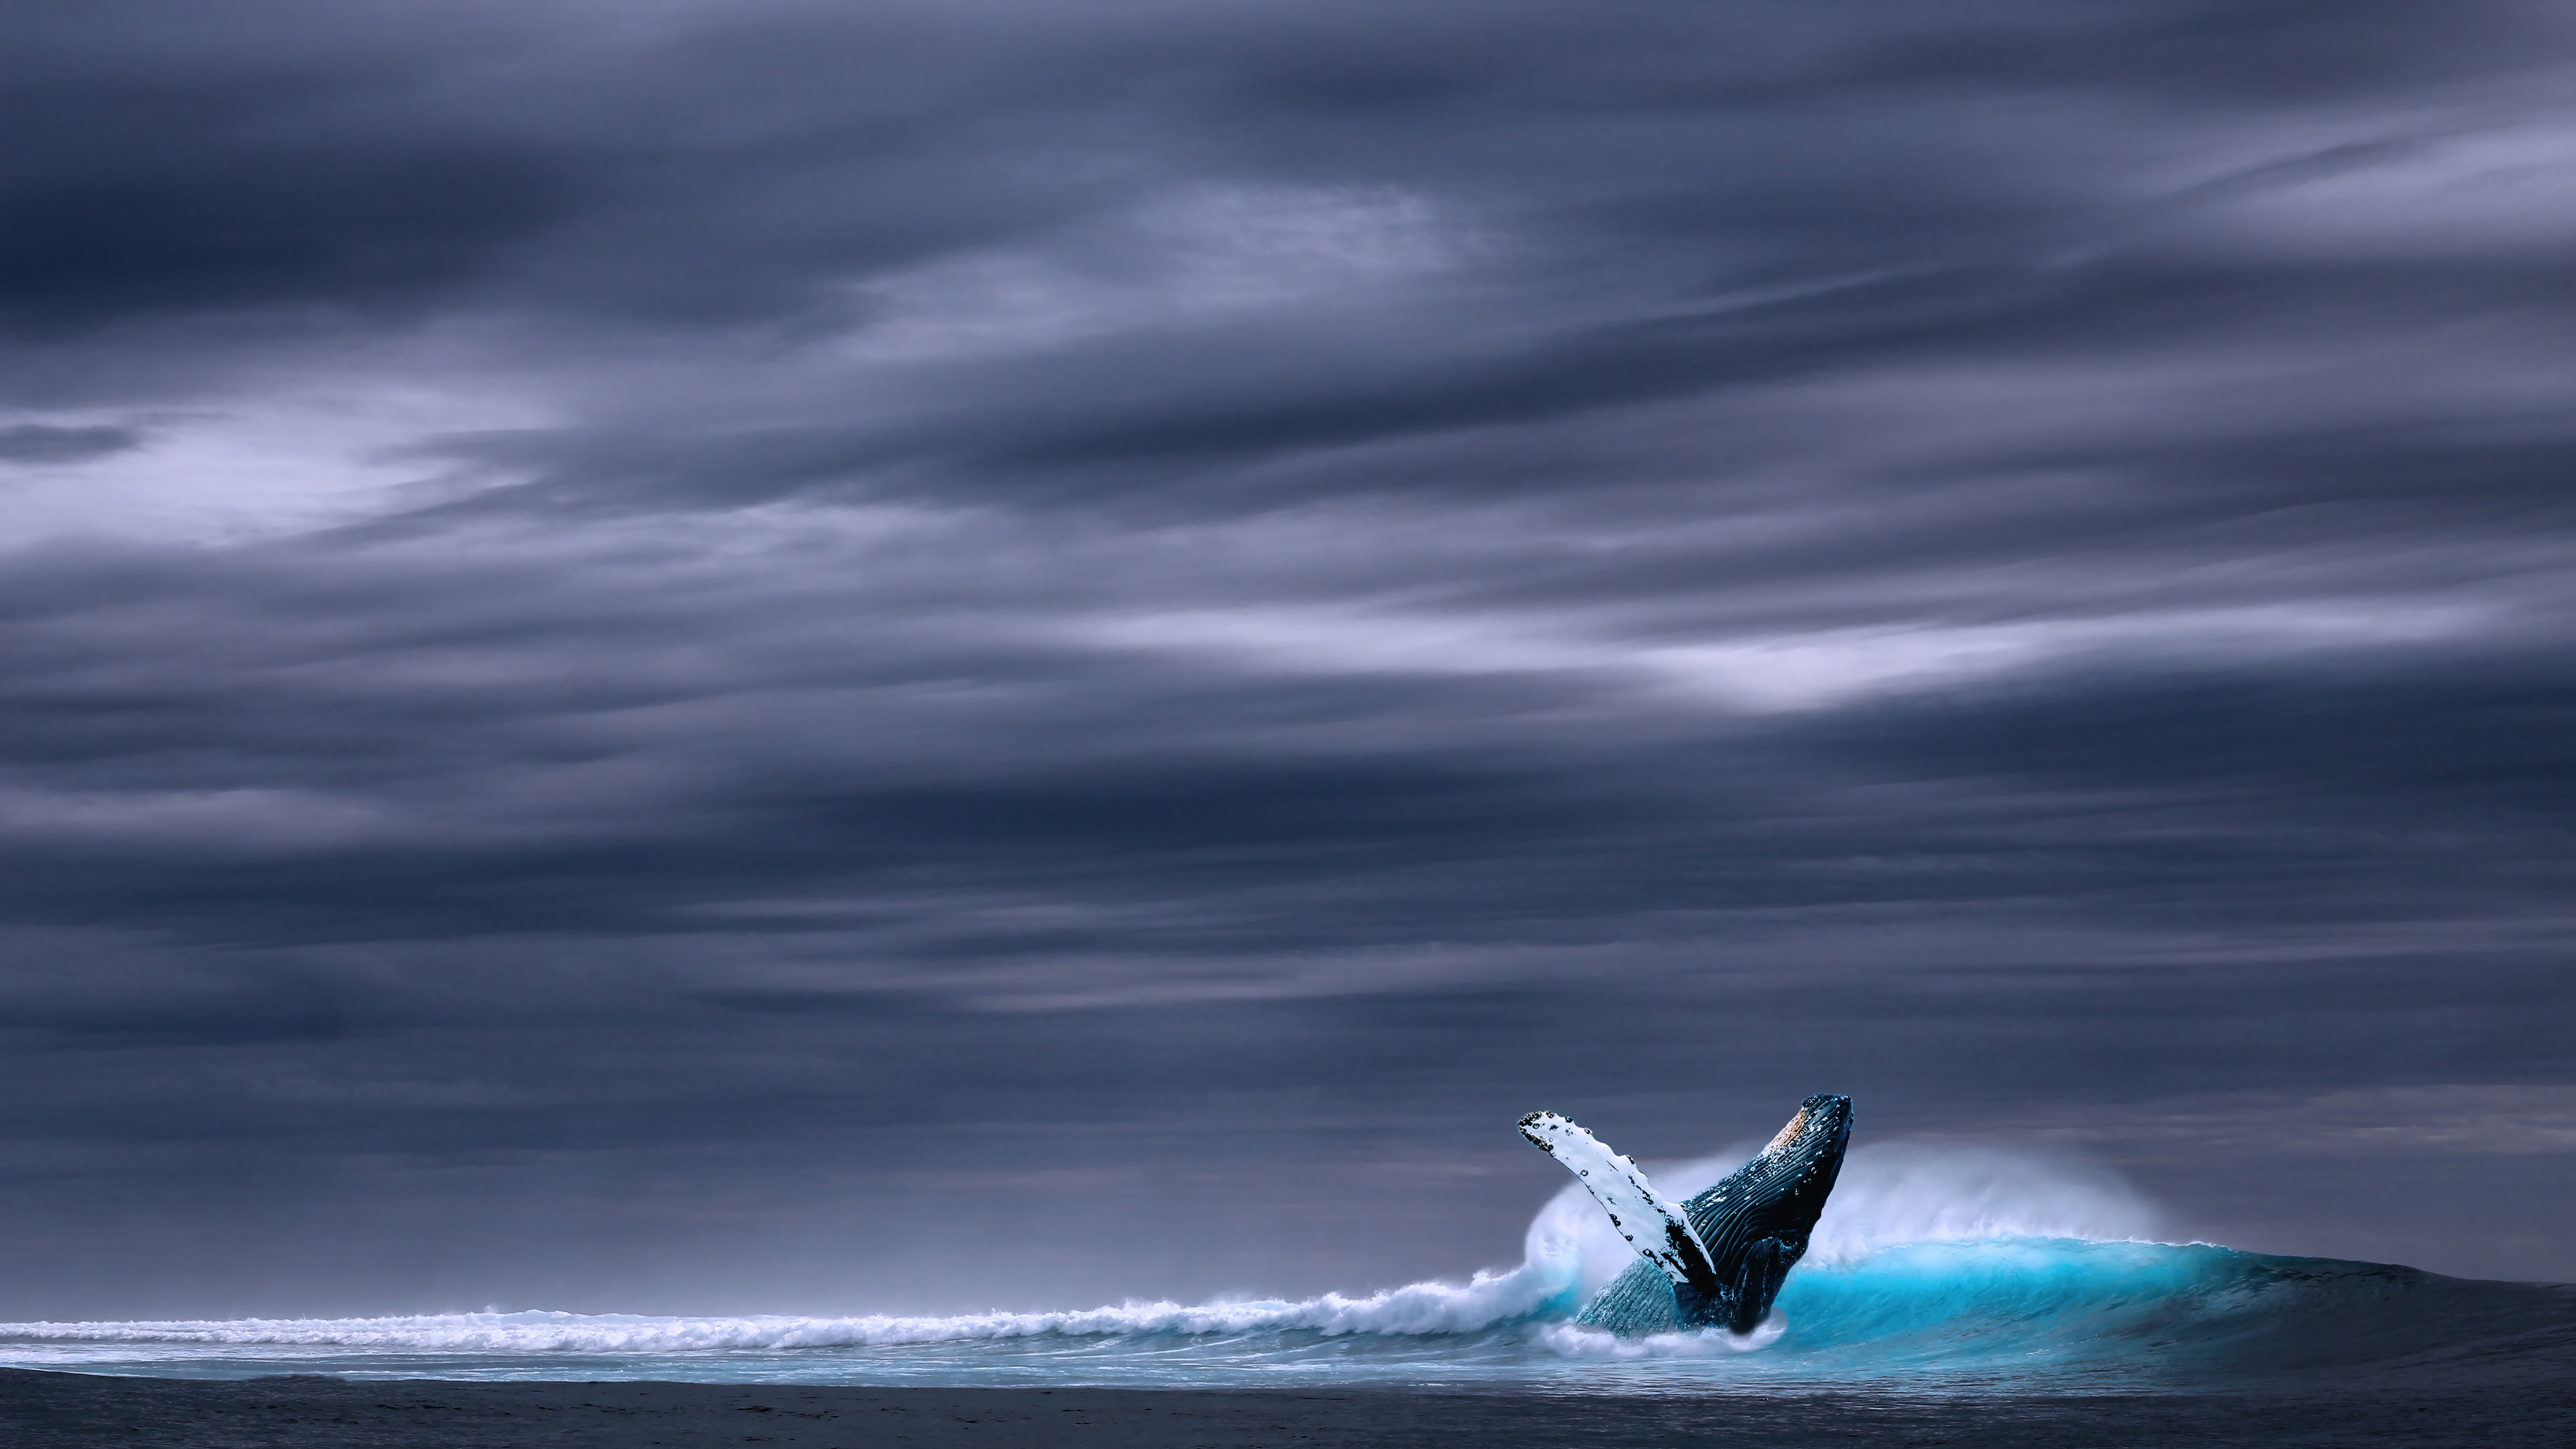 Wallpaper Whale jumping in the sea